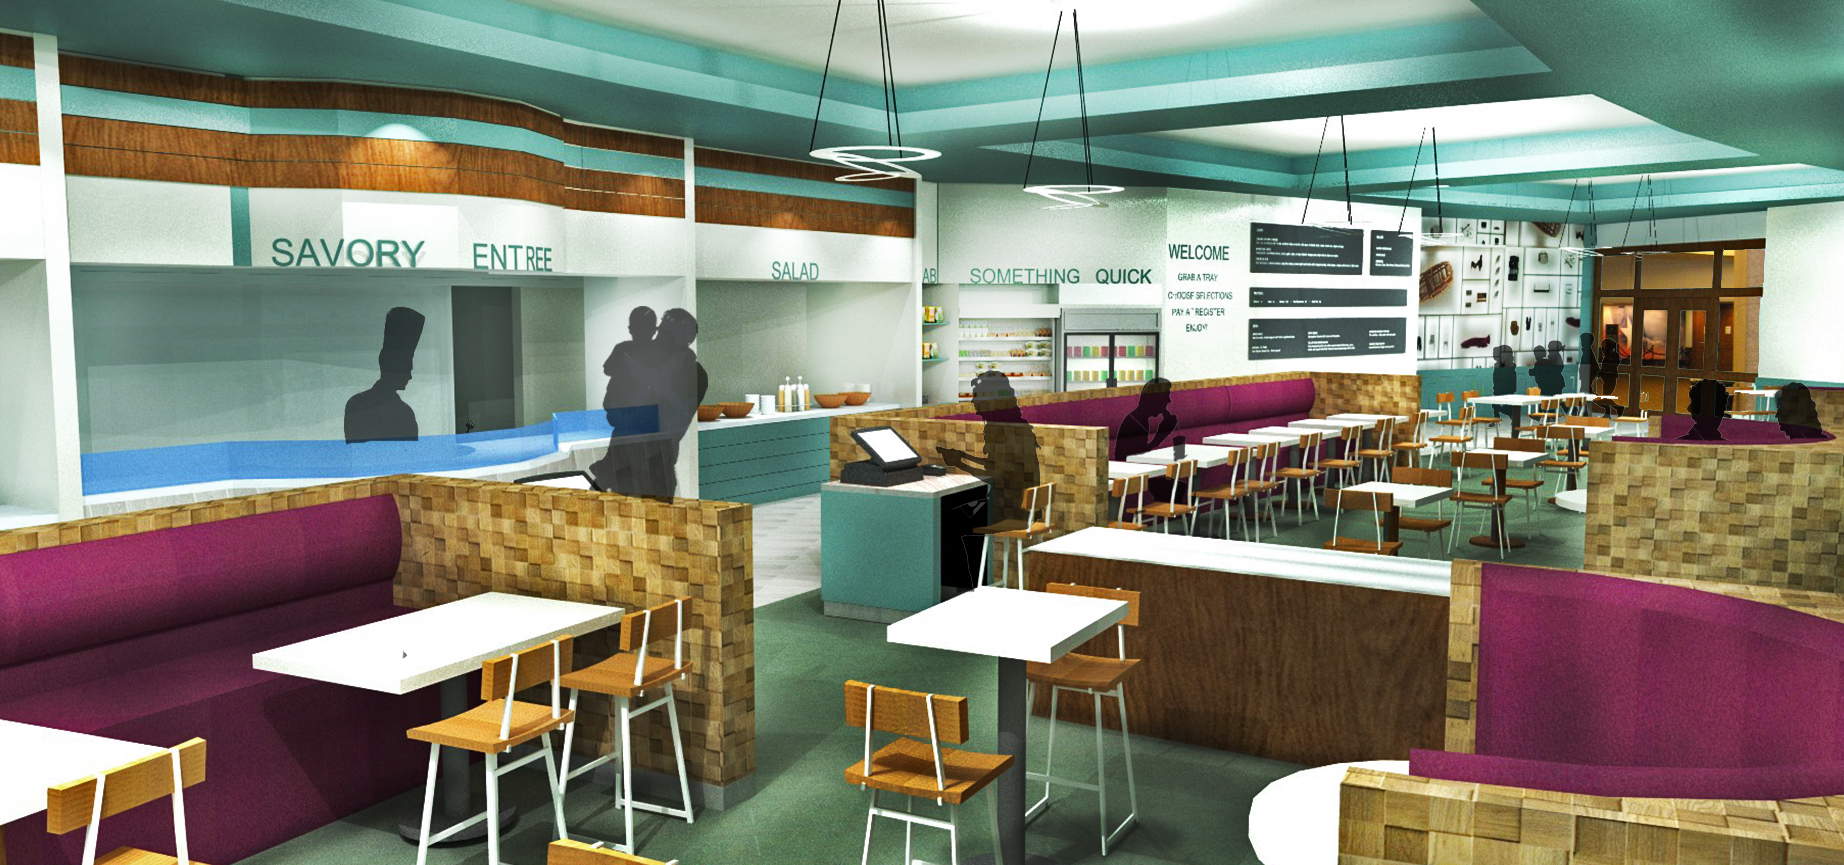 Museum Cafe Dining Room Rendering 7-31-16